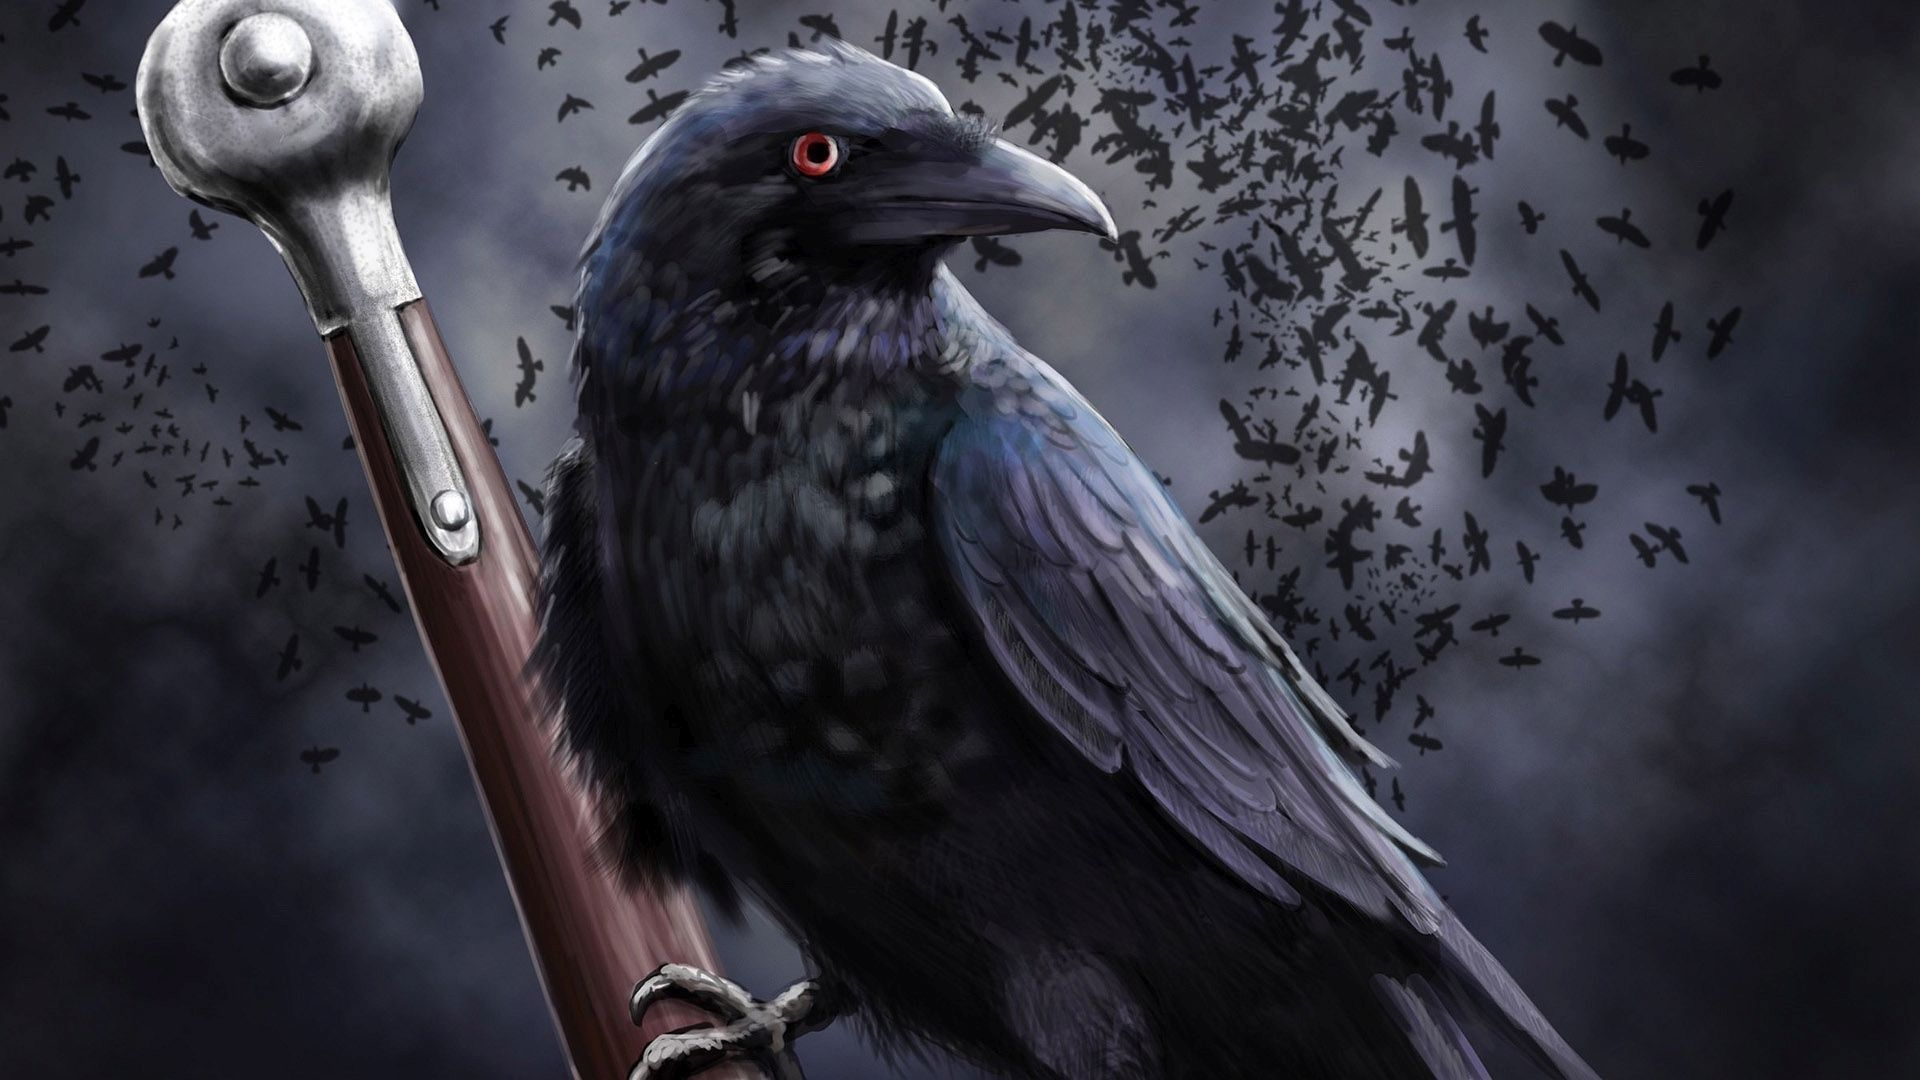 Raven on the sword wallpaper 40116 1920x1080